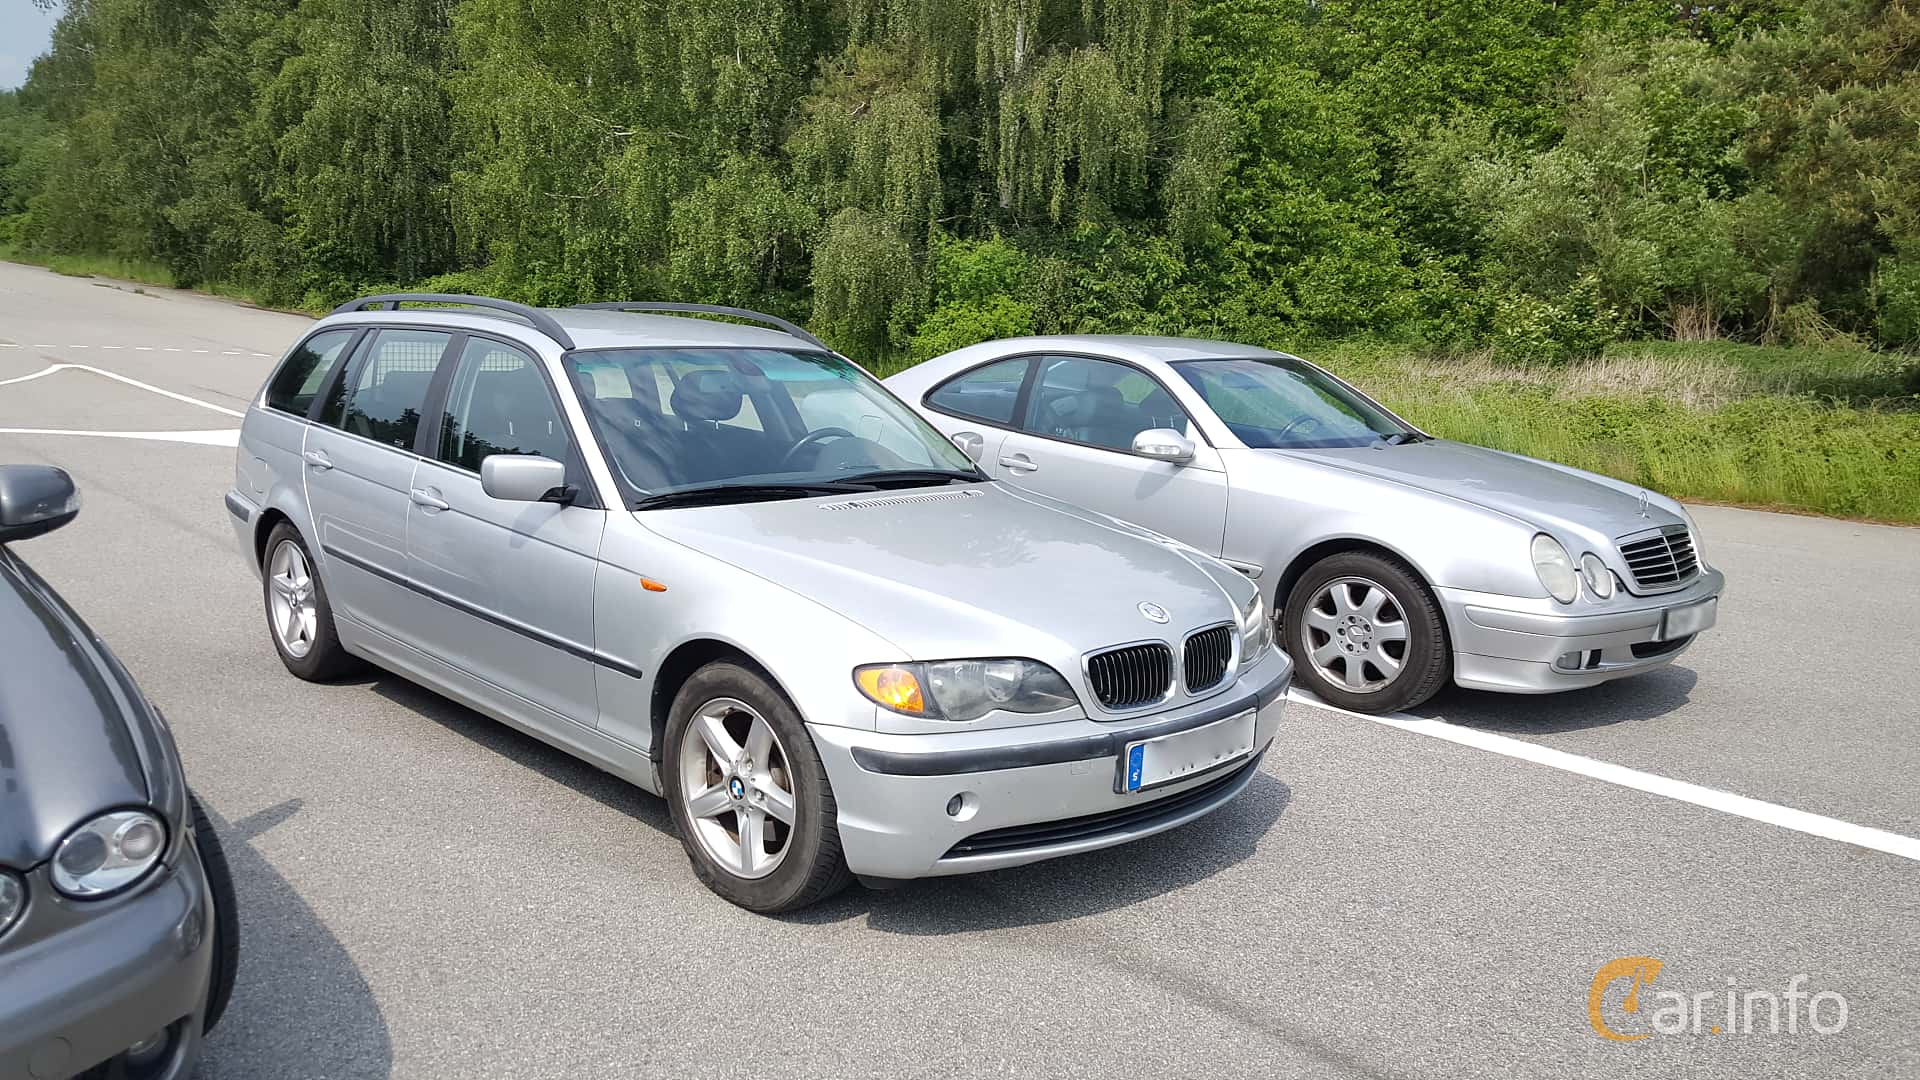 Front/Side of BMW 320i Touring Manual, 170ps, 2002